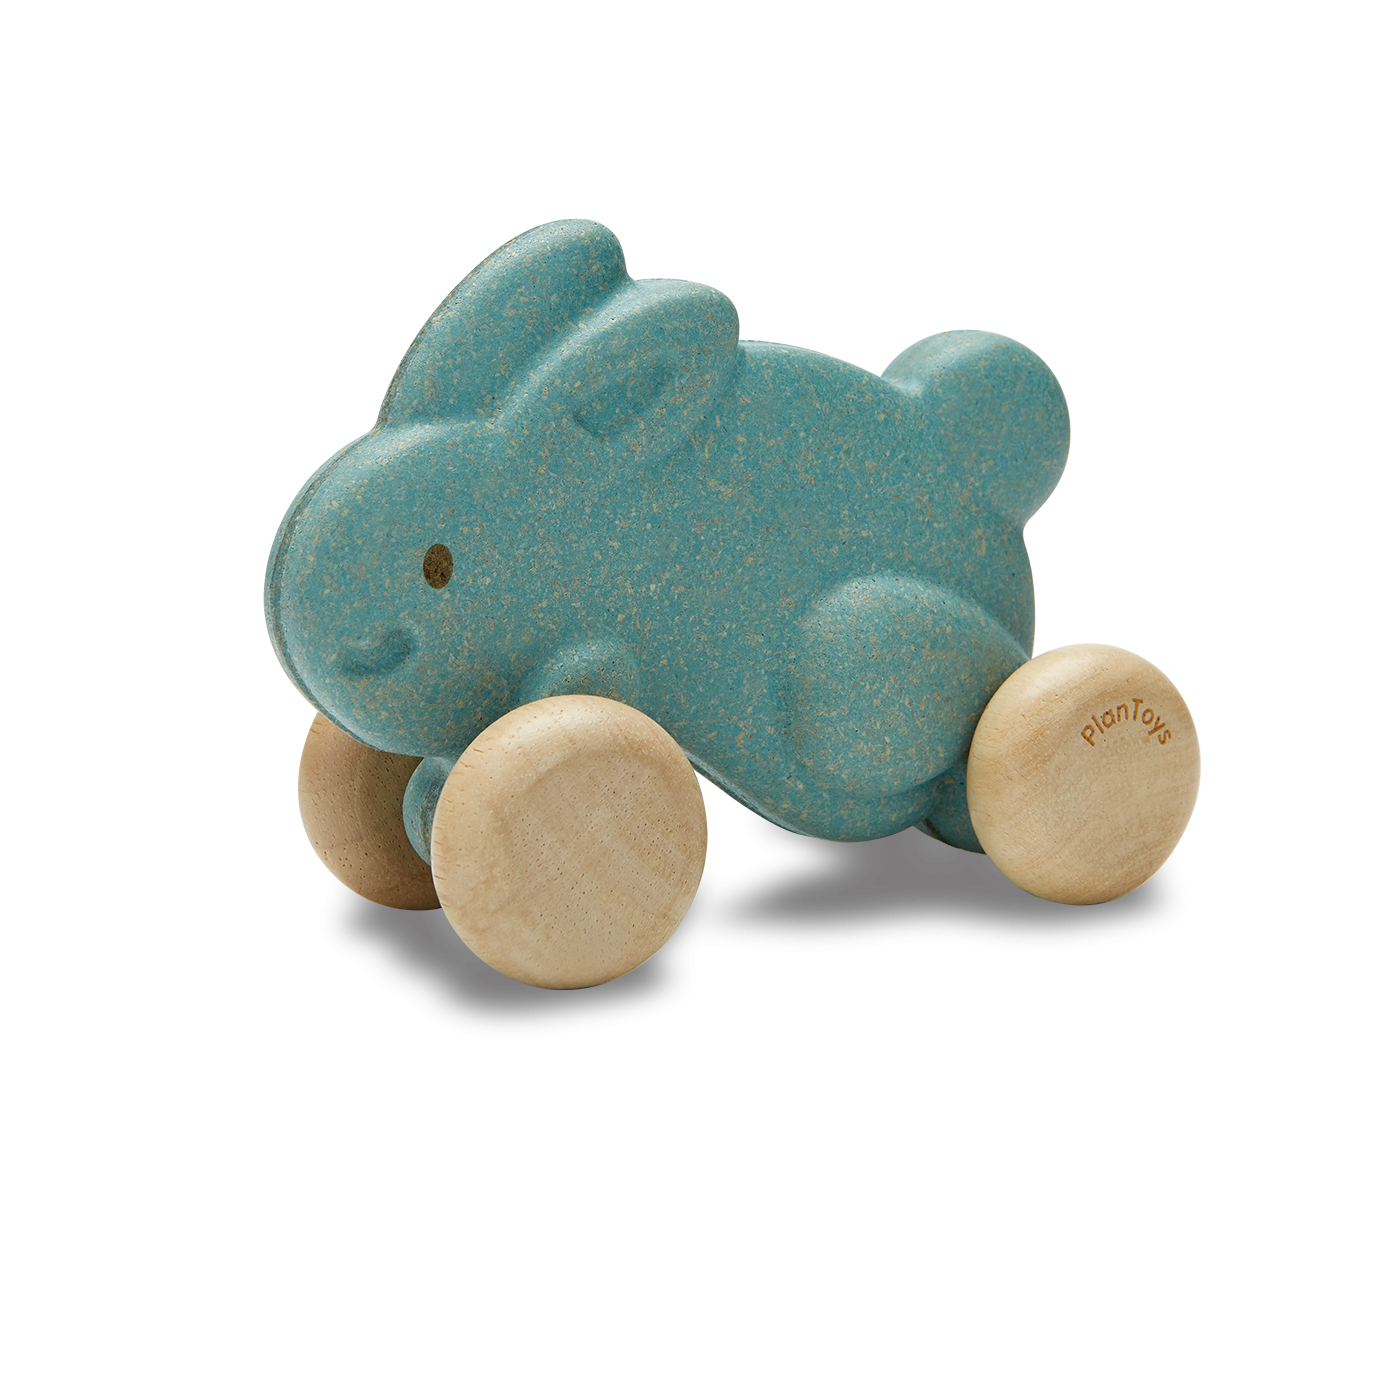 5731_PlanToys_Push_Along_Bunny(Blue)_Active_Play_12m_Fine_Motor_Cause_and_Effect_Language_and_Communications_Imagination_Coordination_Gross_Motor_Wooden_toys_Education_toys_Safety_Toys_Non-toxic_0.png